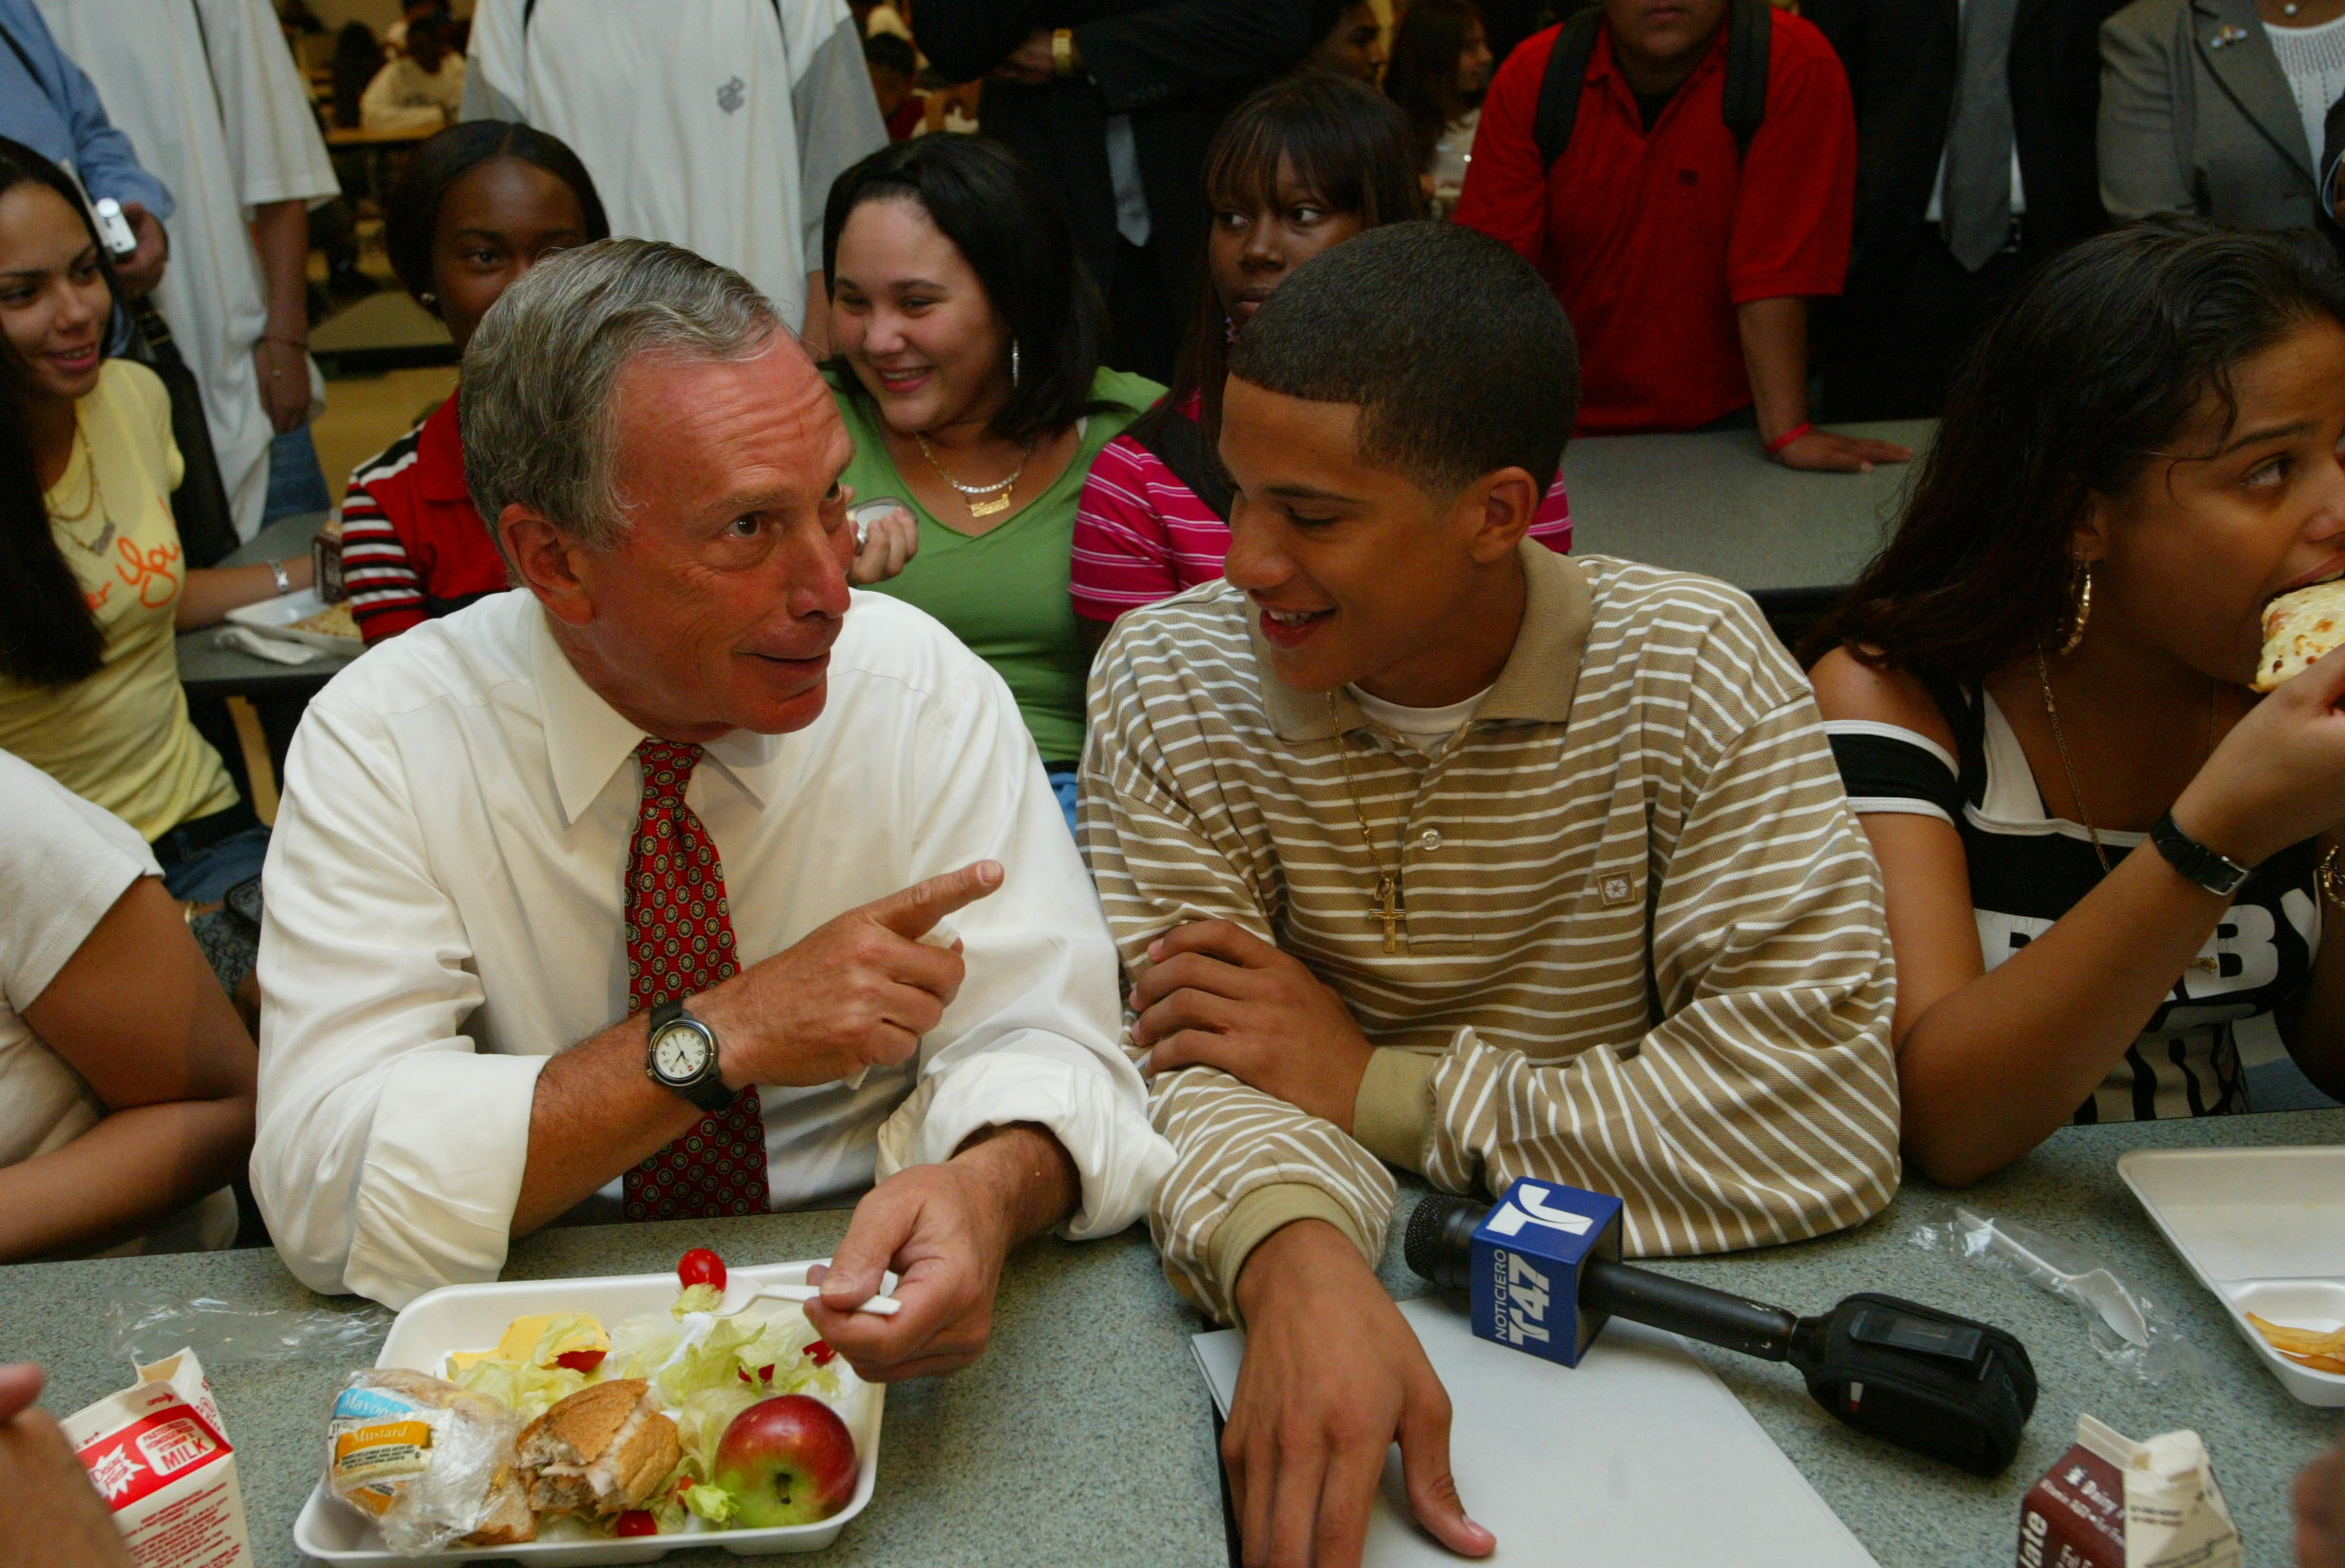 Mike grabs lunch with students during a visit to Queens Vocational & Technical High School